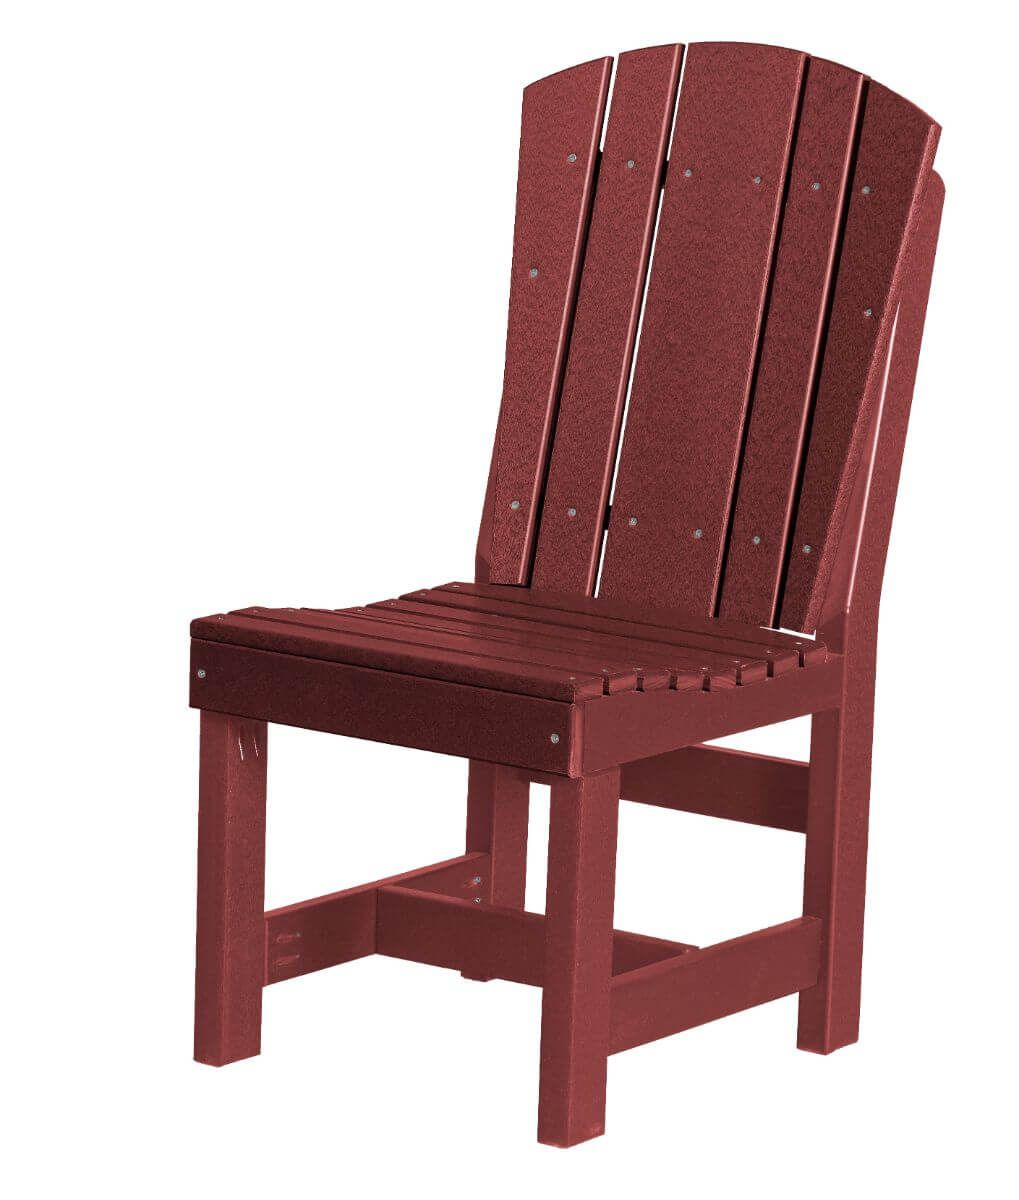 Cherry Wood Oristano Outdoor Dining Chair